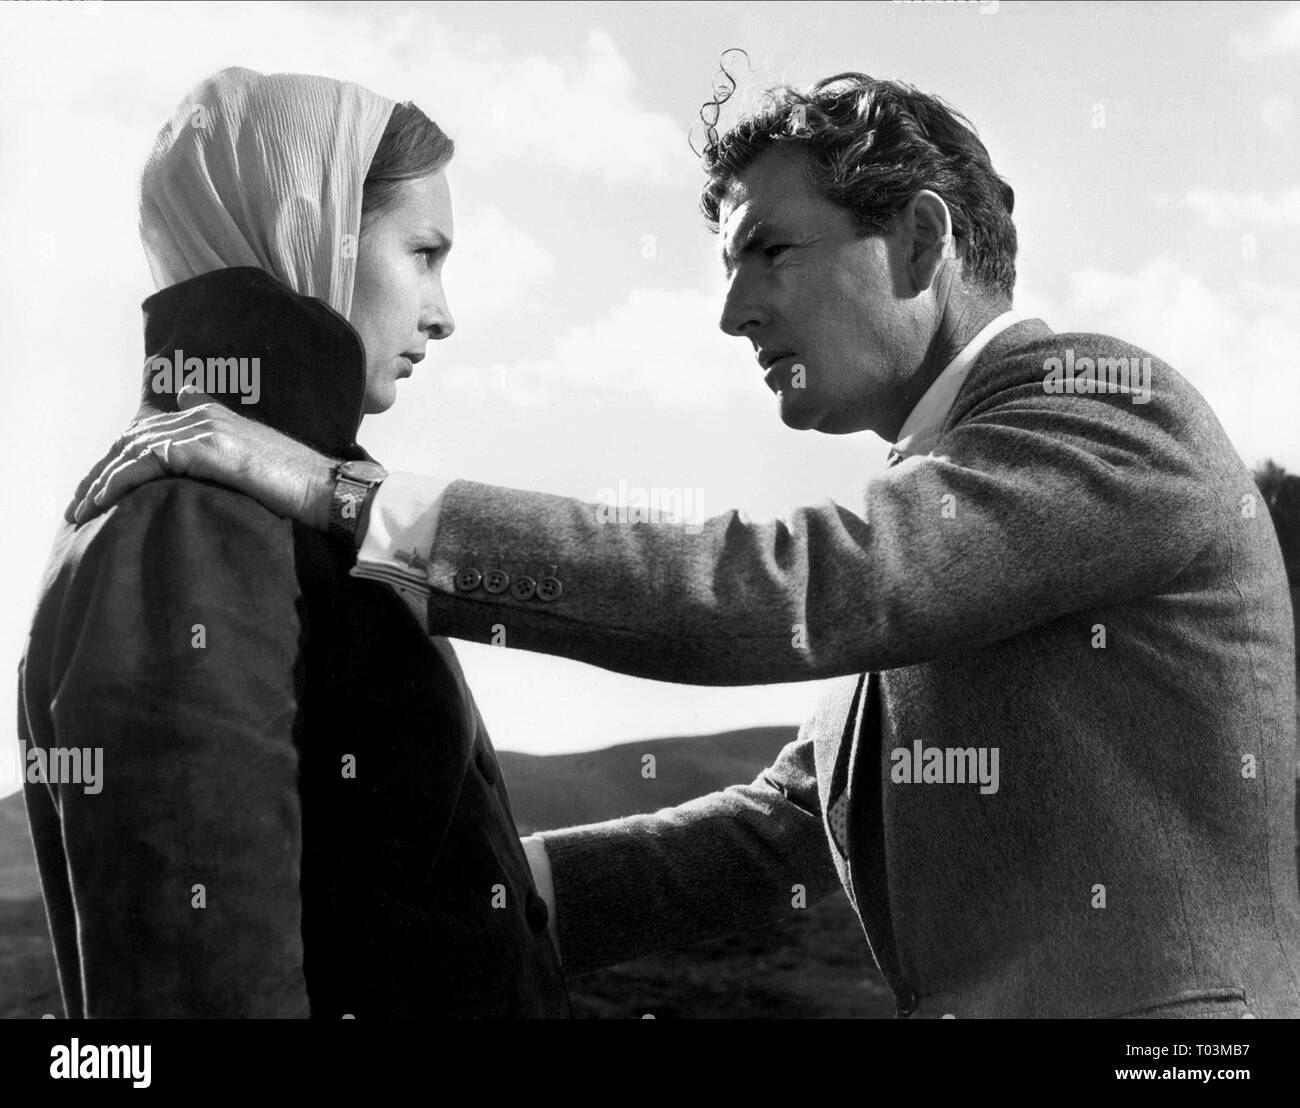 THE 39 STEPS, TAINA ELG , KENNETH MORE, 1959 - Stock Image